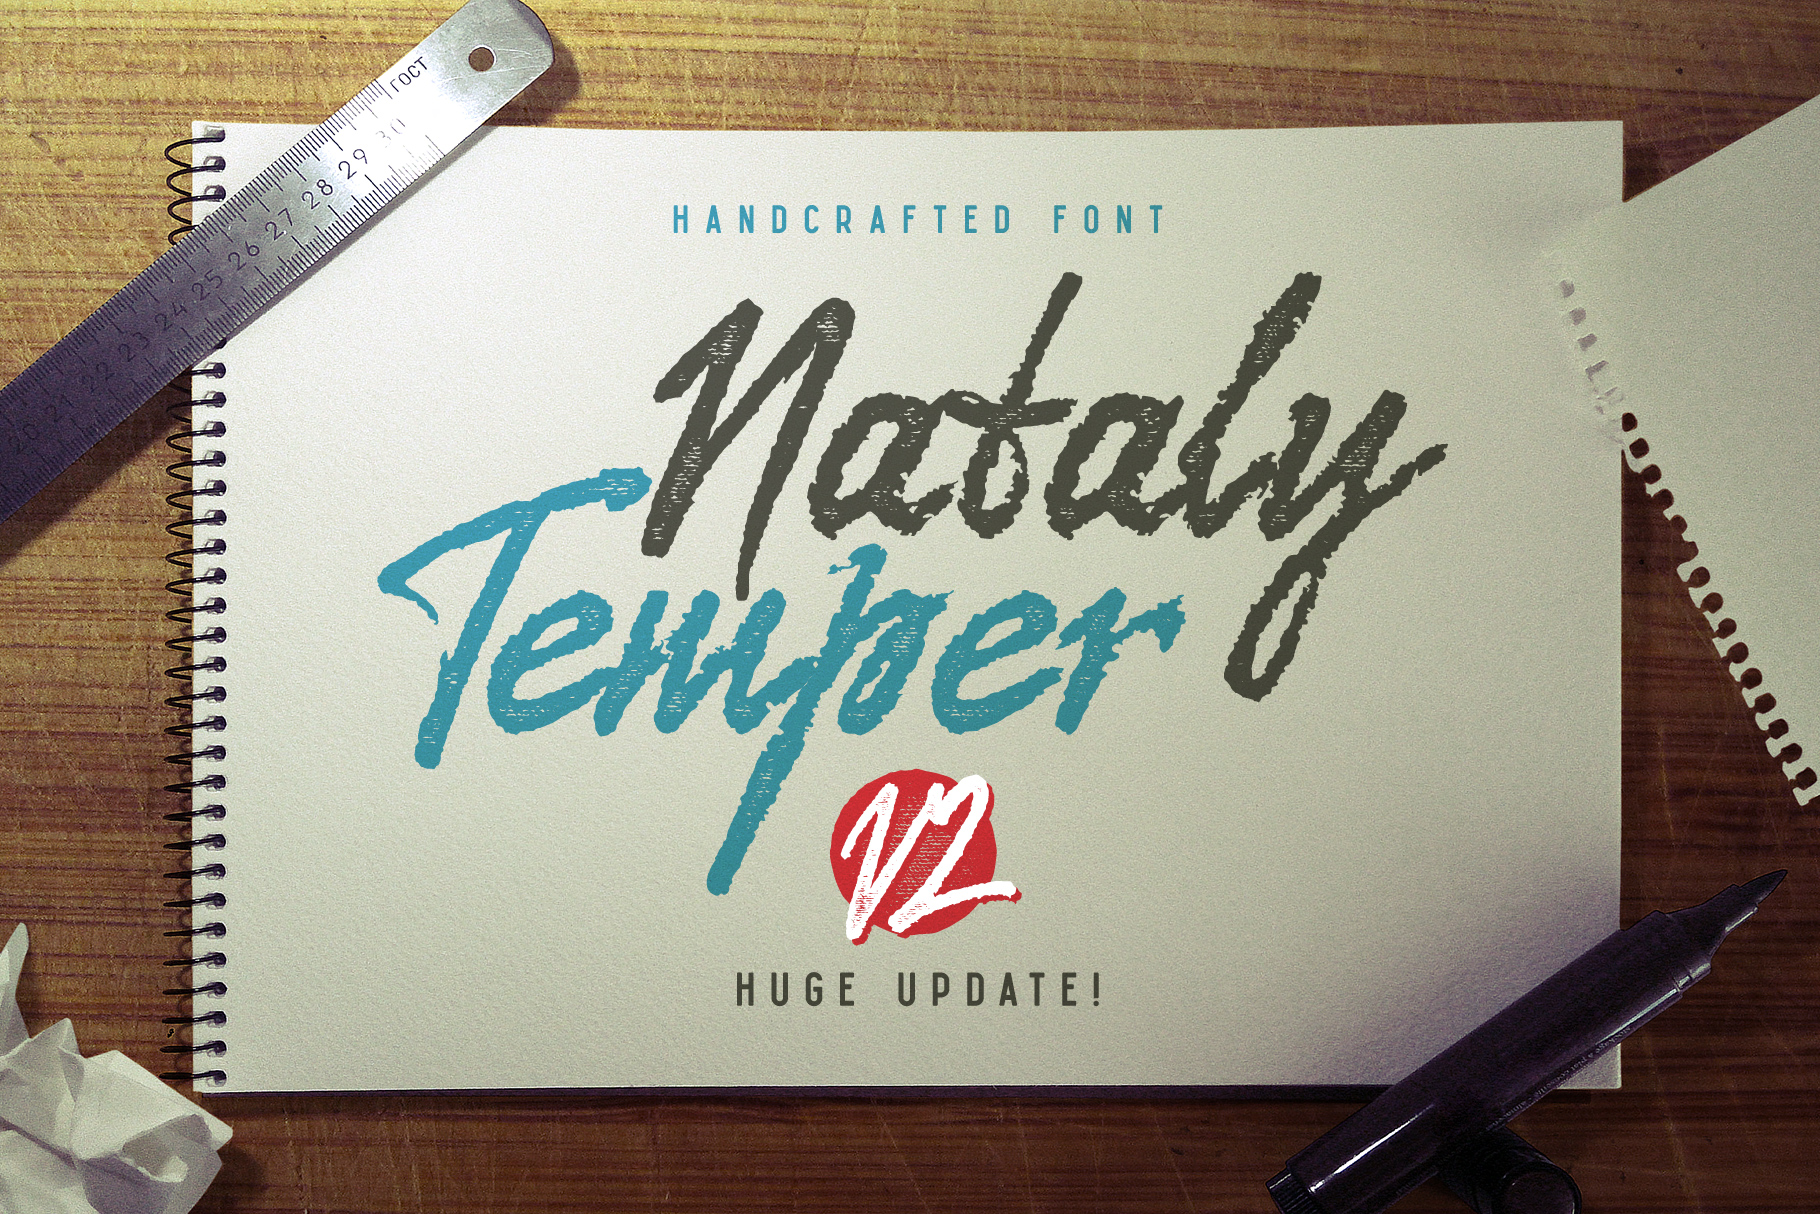 Nataly temper v.2 Update! example image 1